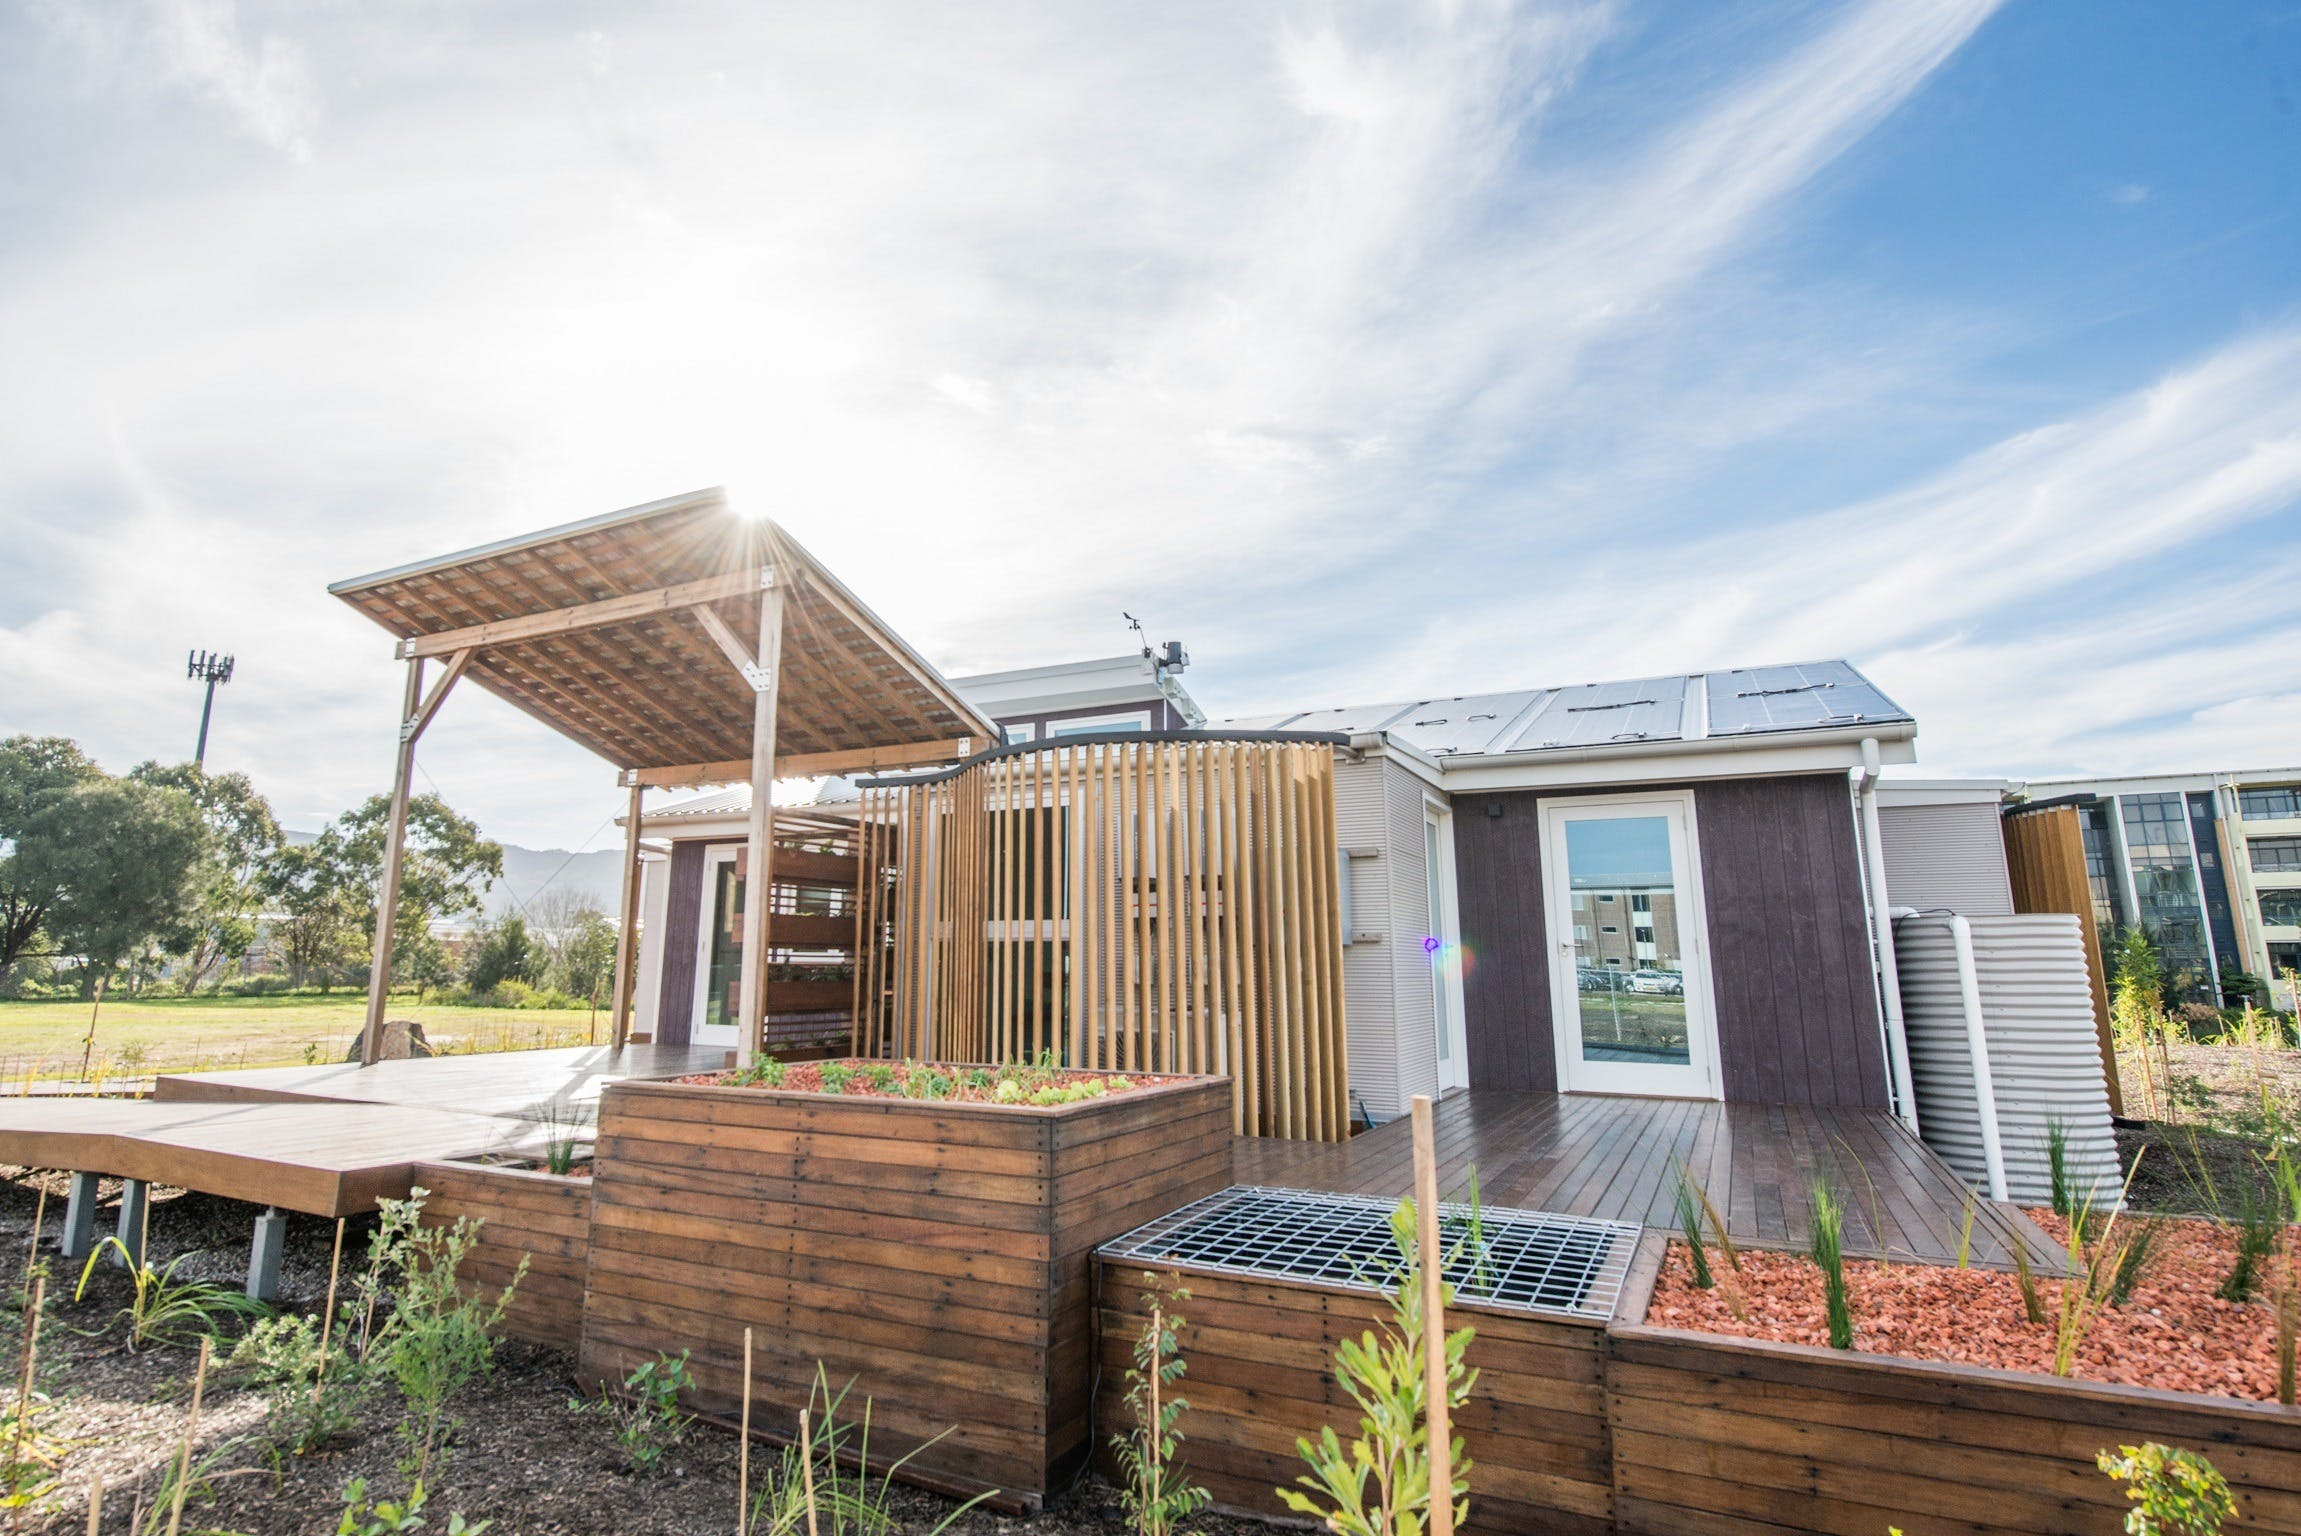 Sustainable Buildings Research Centre Sustainable Houses Day - Kempsey Accommodation